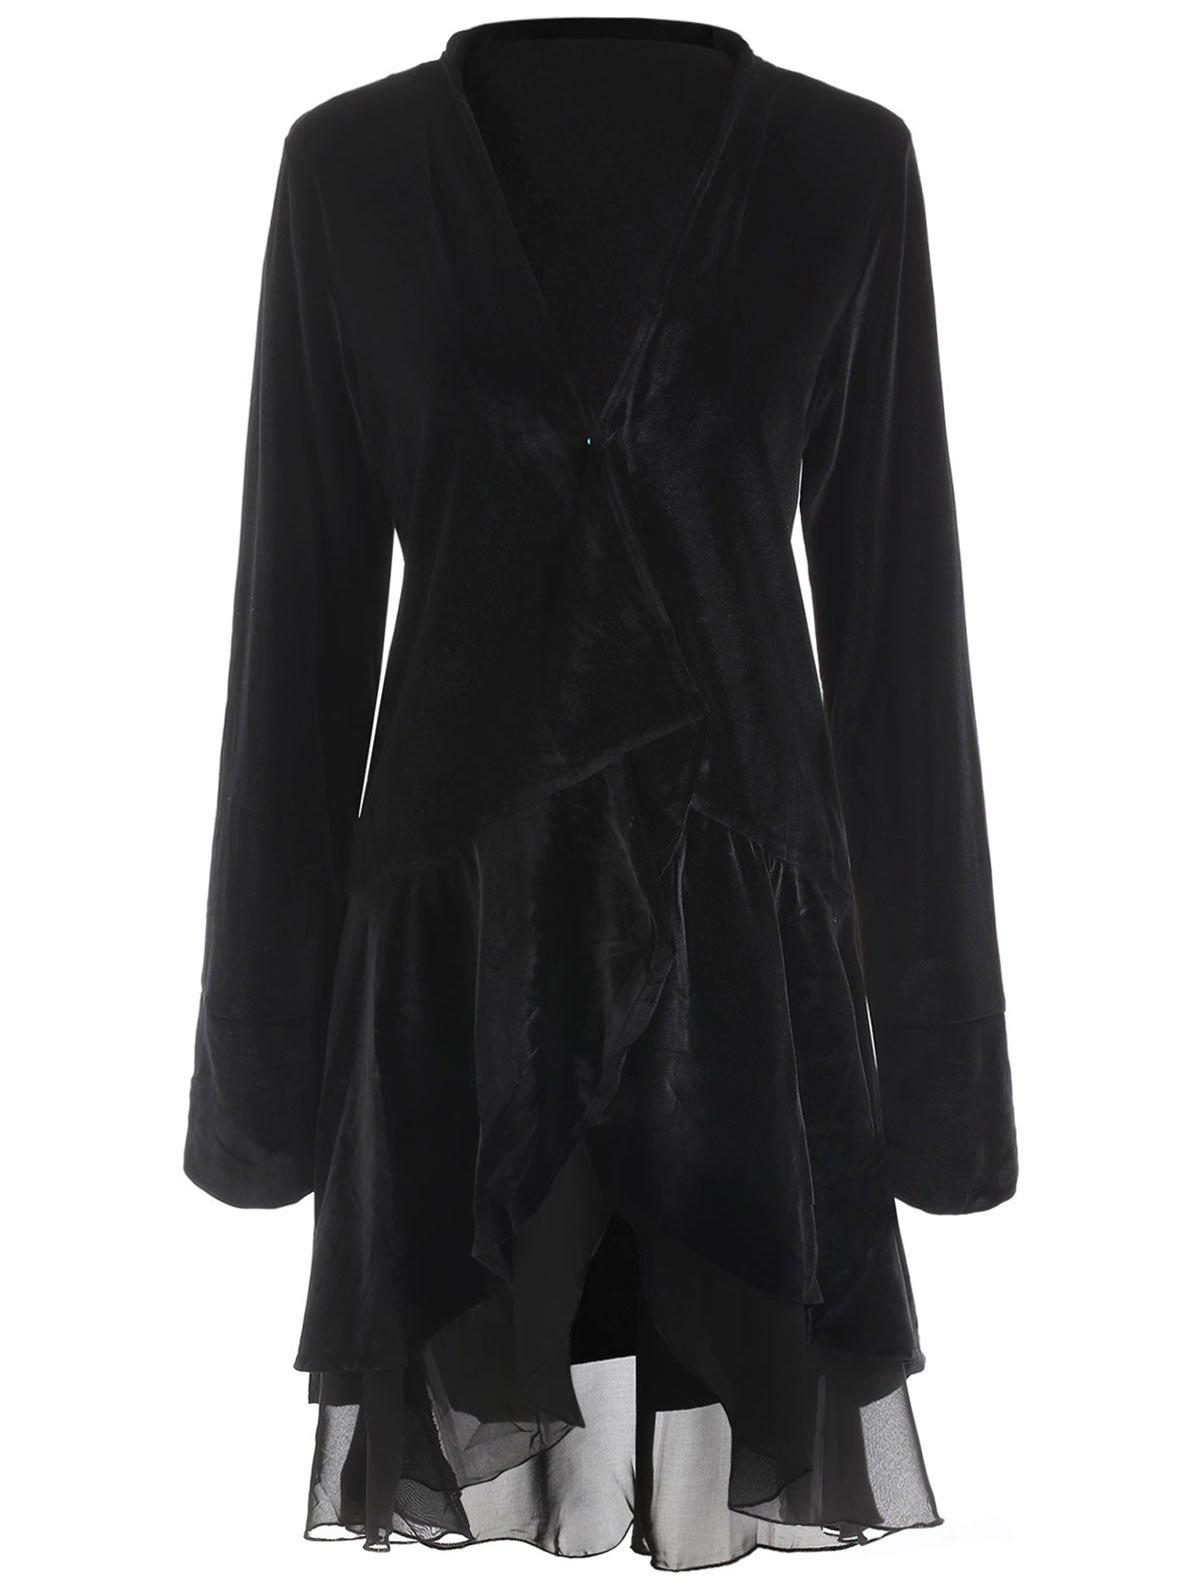 Fashion Stylish Long Sleeve Swingy Velvet Women's Coat